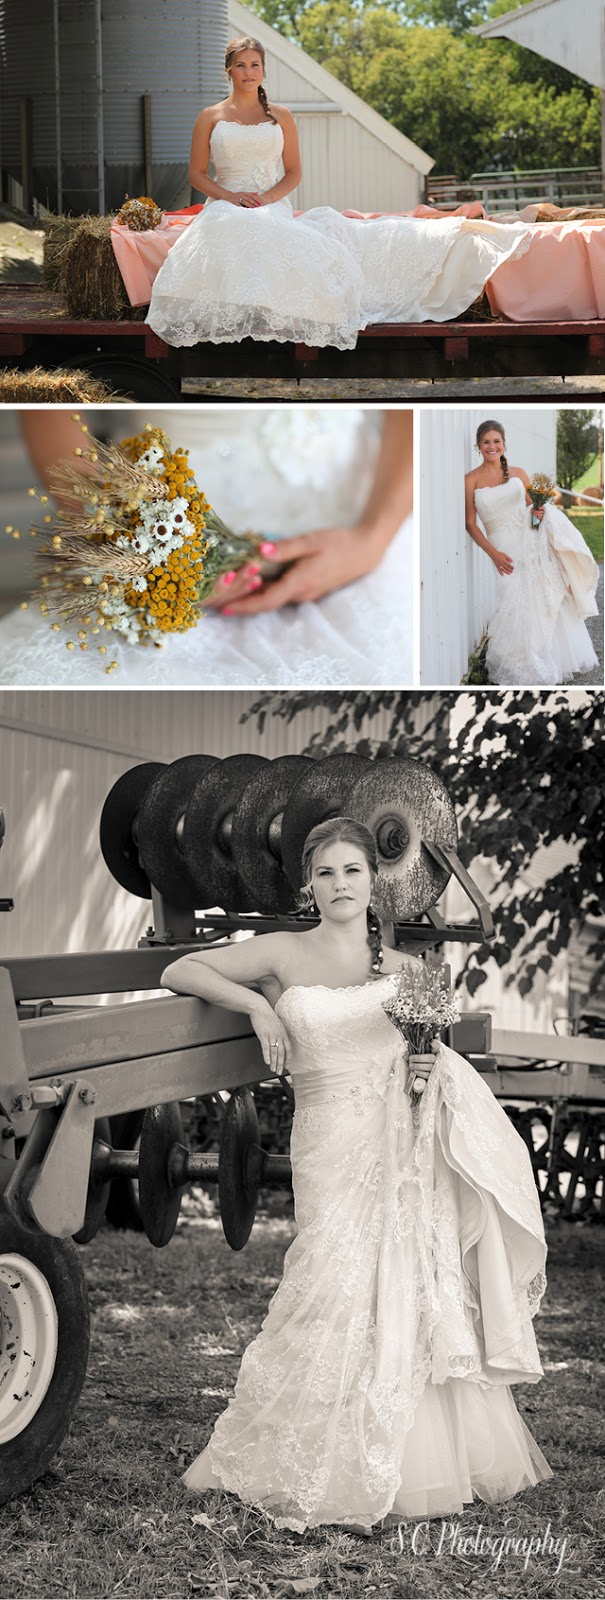 Hay wagon bride, farm bridal portraits, S.C. Photography